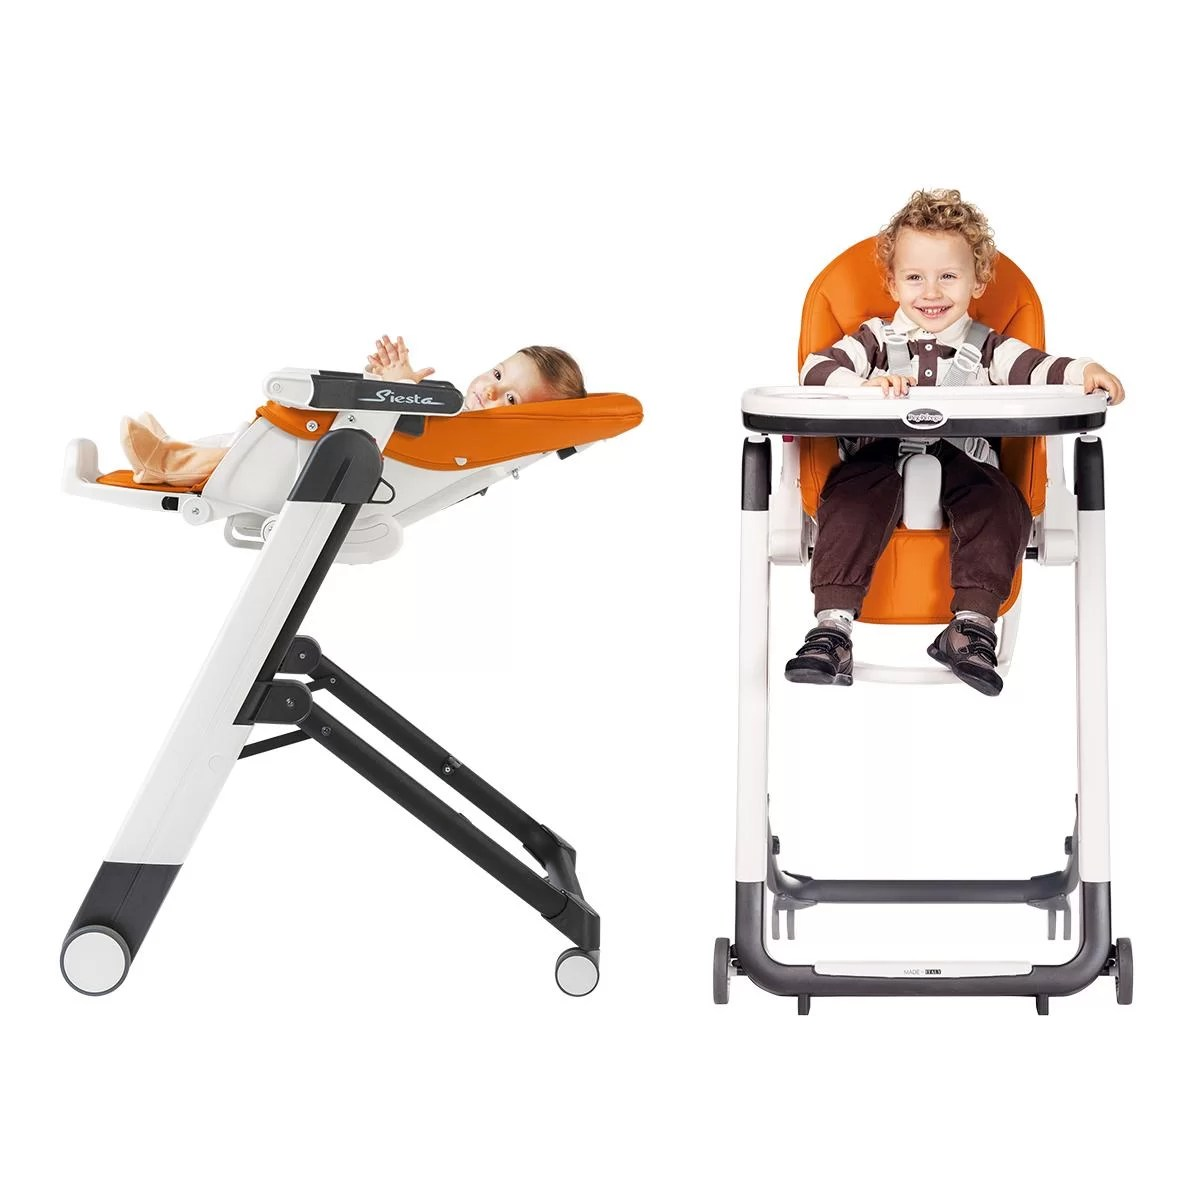 Perego High Chair Is The Peg Perego Siesta High Chair As Good As They Say It Is